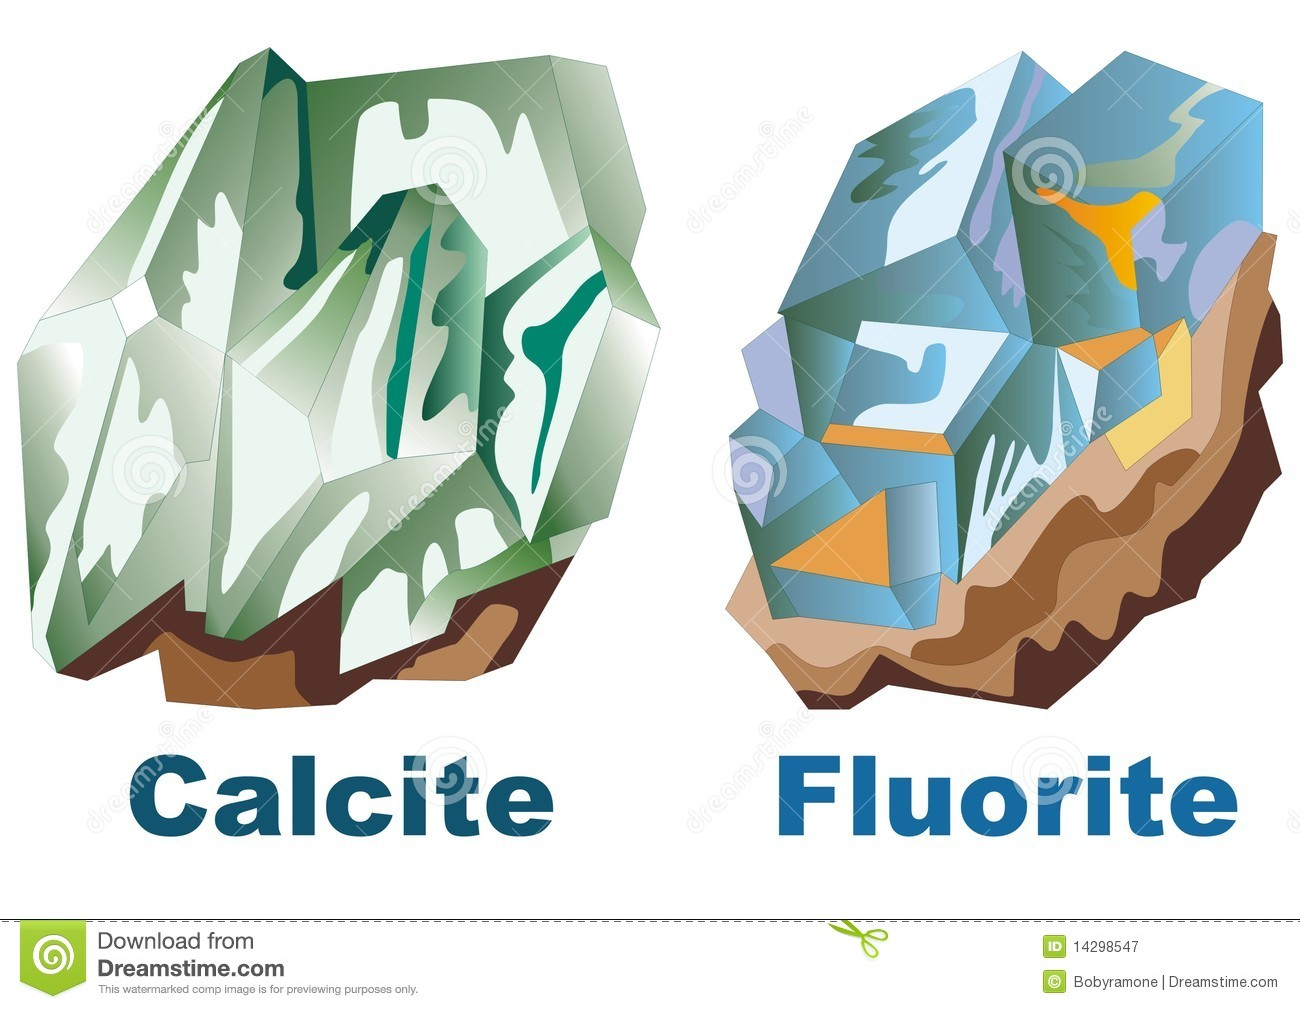 Fluorite clipart #1, Download drawings